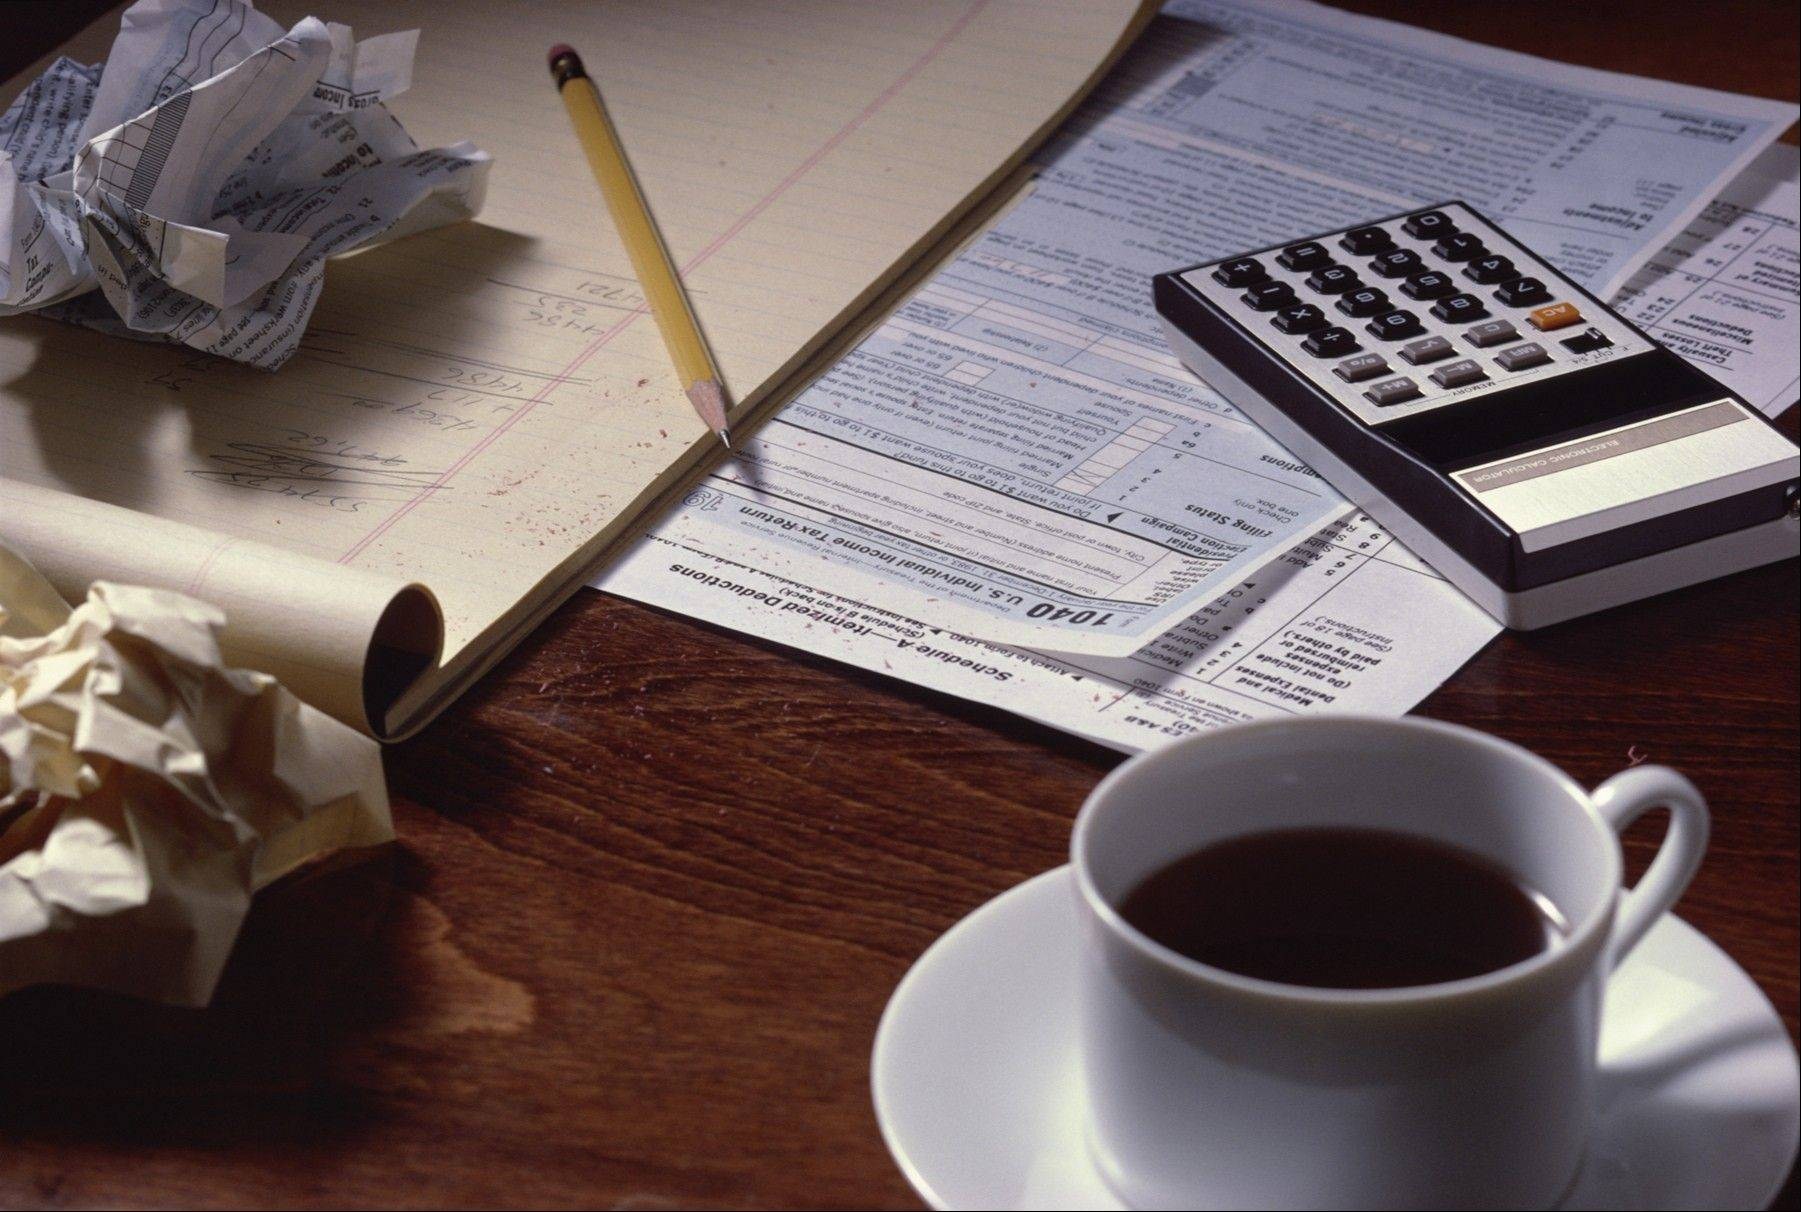 The IRS says changes in federal tax laws should not delay most returns for 2012.